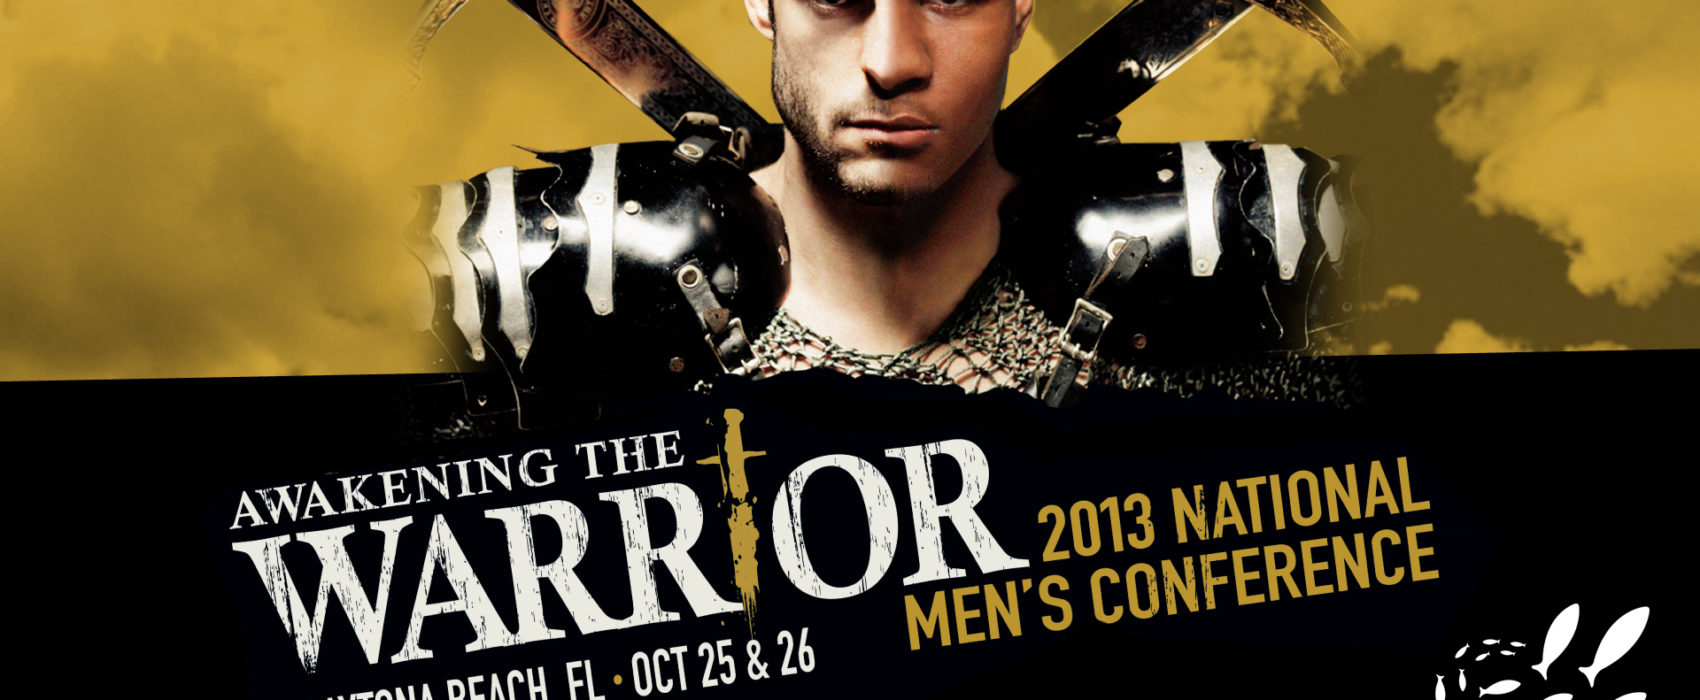 Promise Keepers 2013 promotional poster (via religion.ch)